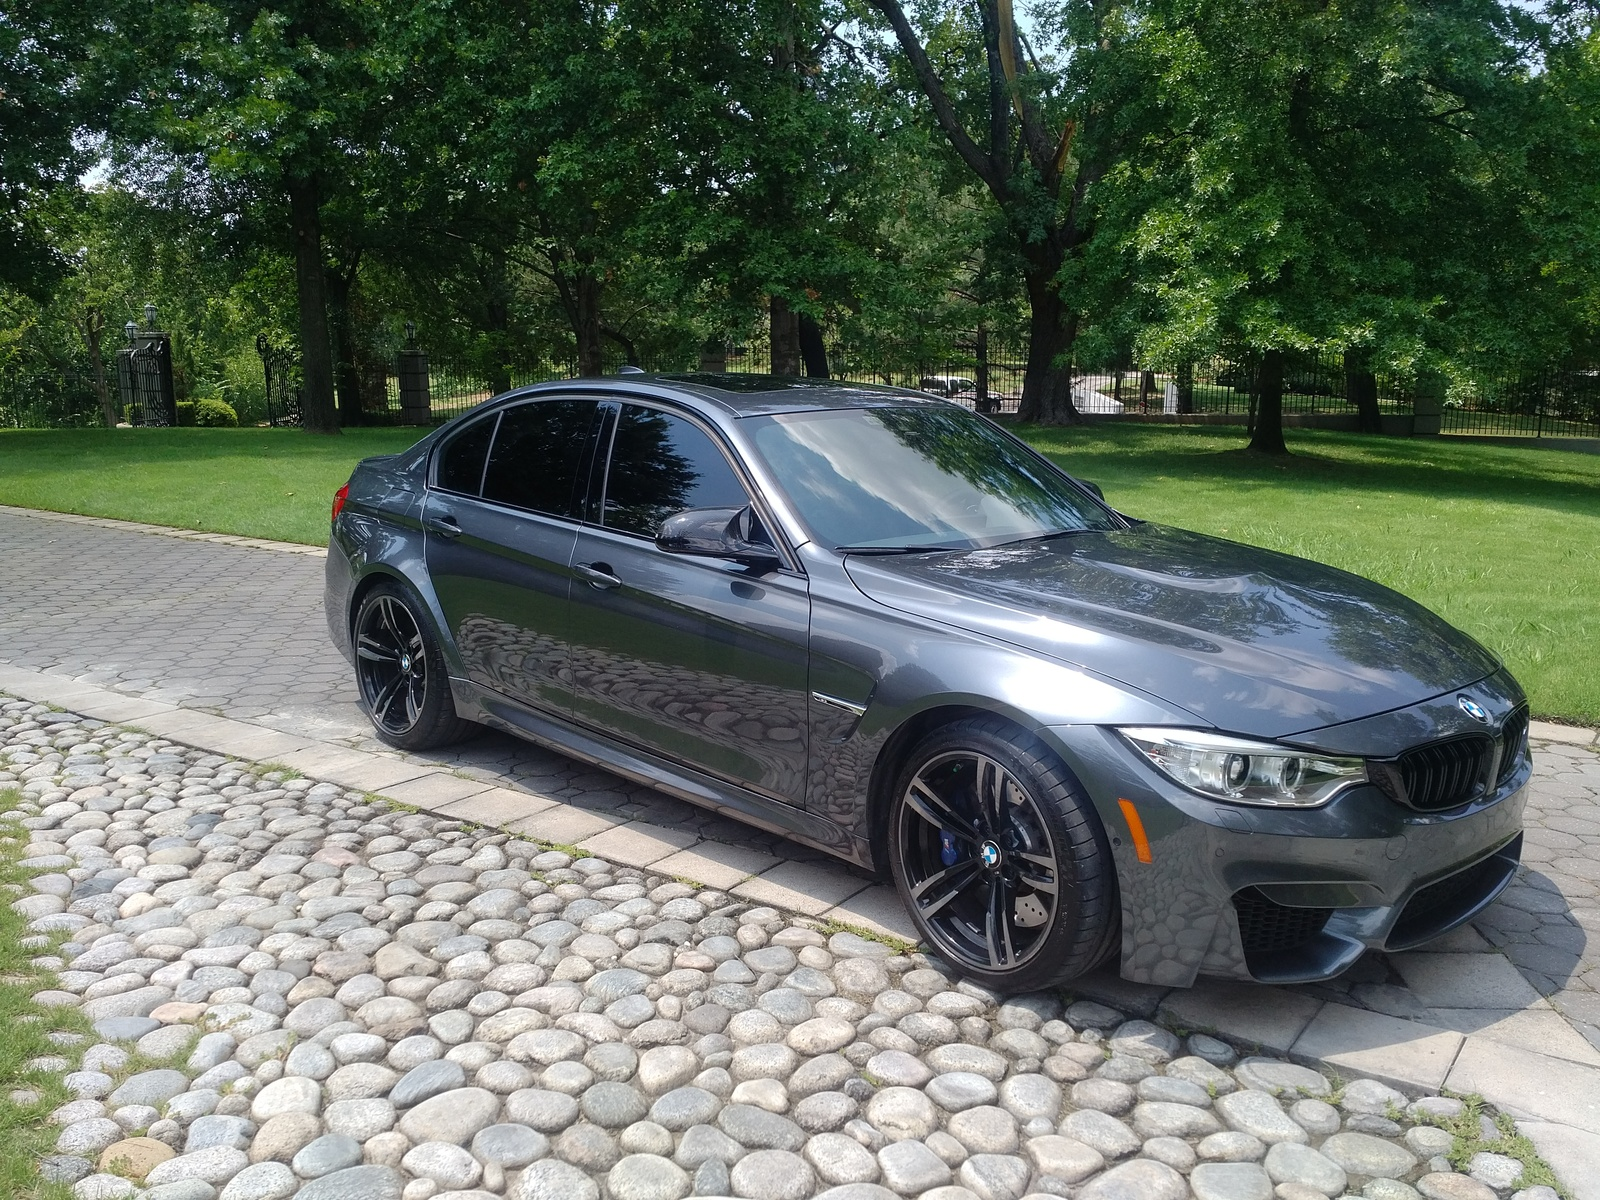 new 2015 bmw m3 for sale cargurus sexy girl and car photos. Black Bedroom Furniture Sets. Home Design Ideas